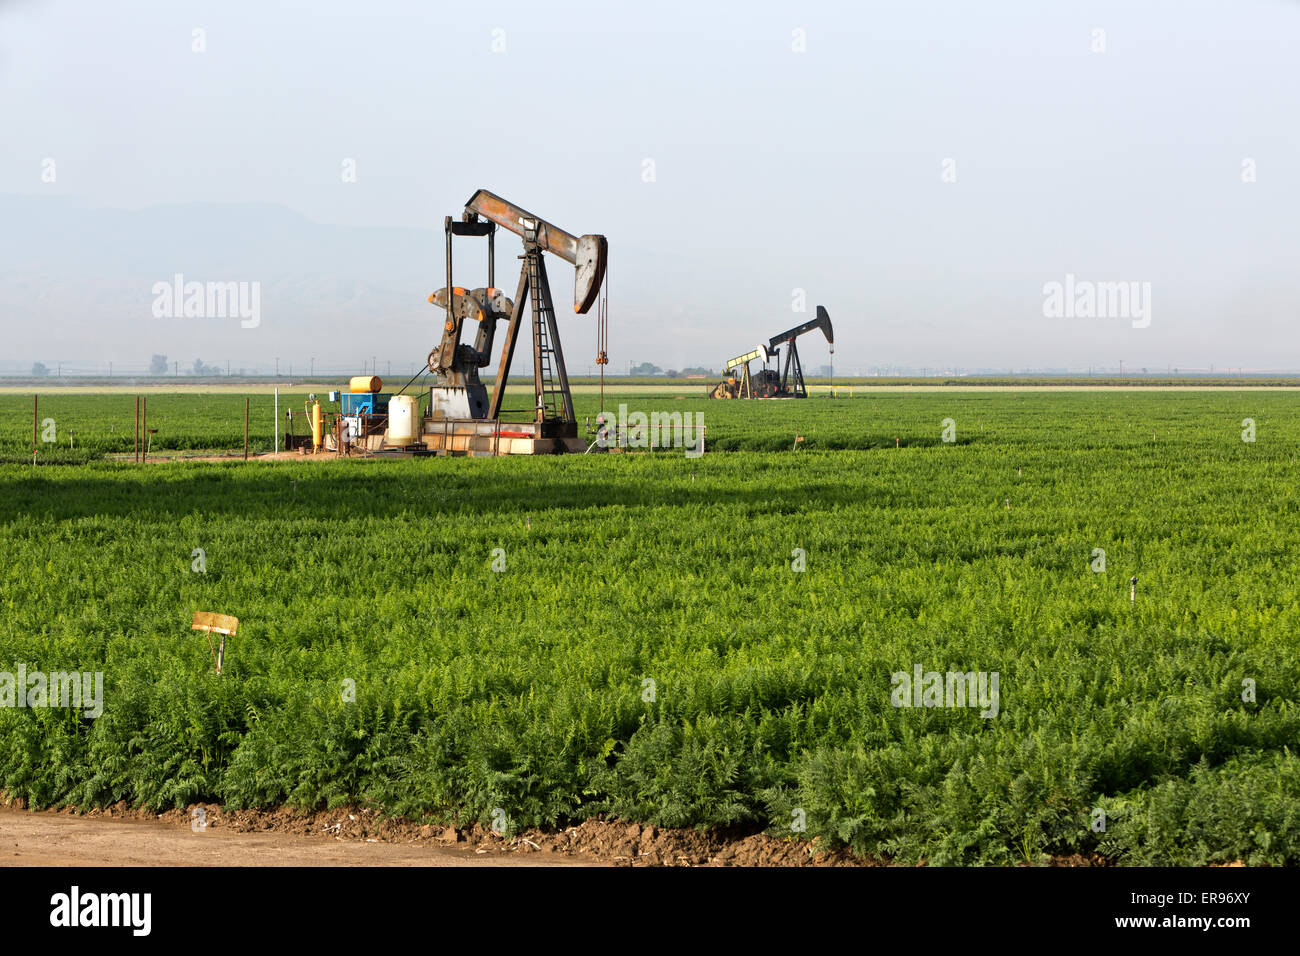 Donkey pumps operating in carrot field. - Stock Image